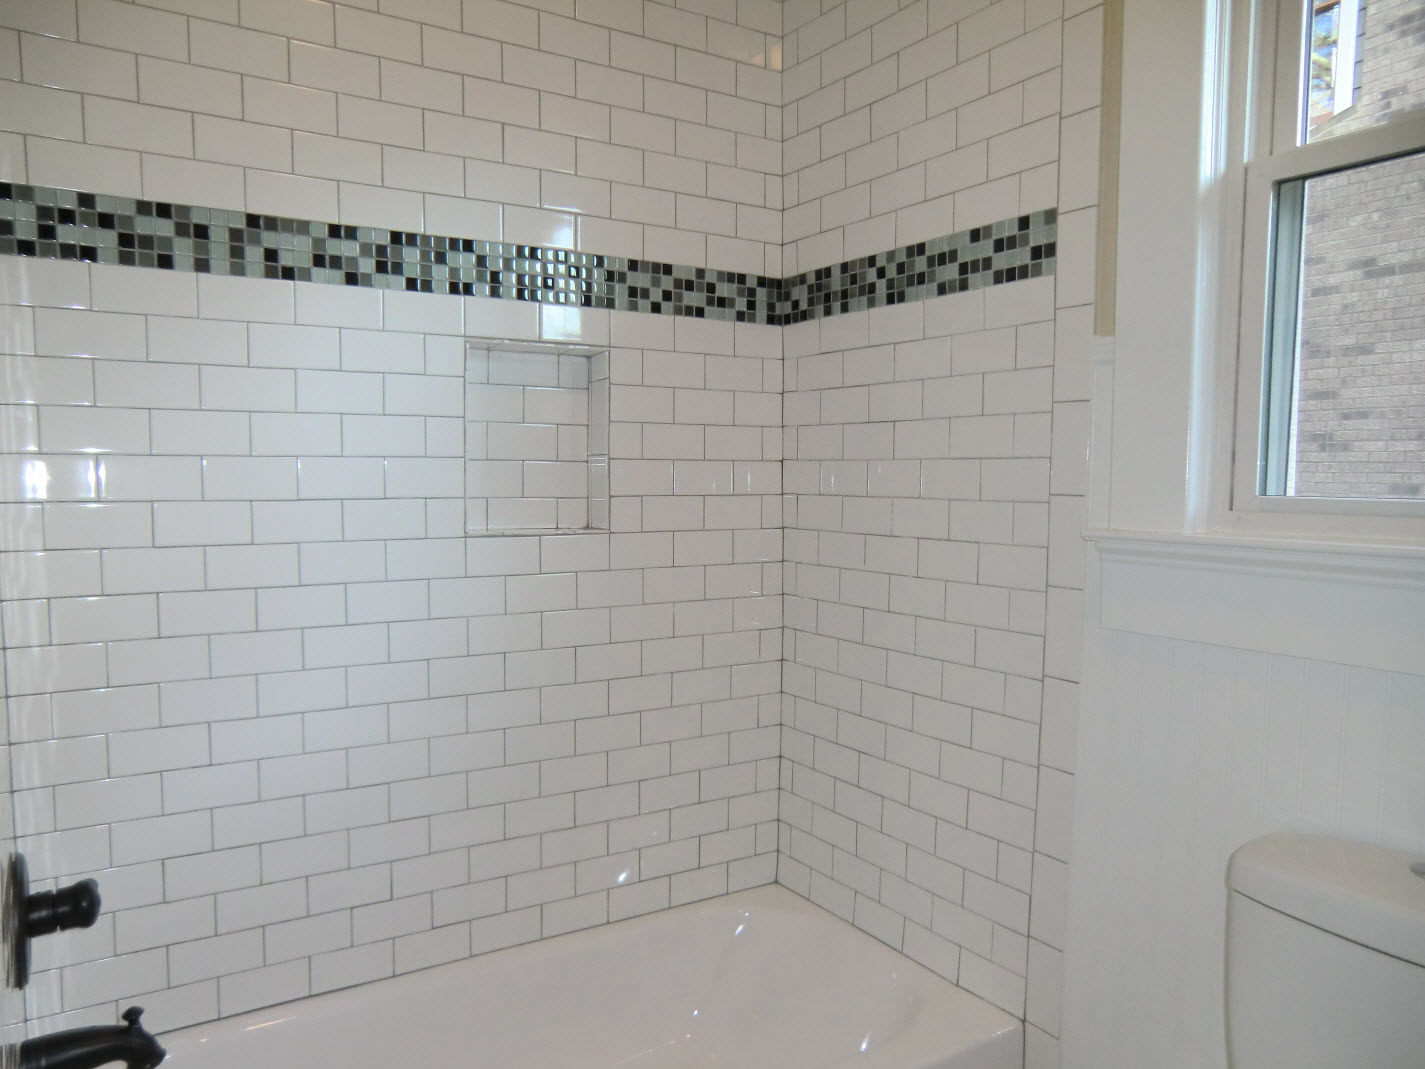 Guest-Bath-tub-with-subway-tile-surround.